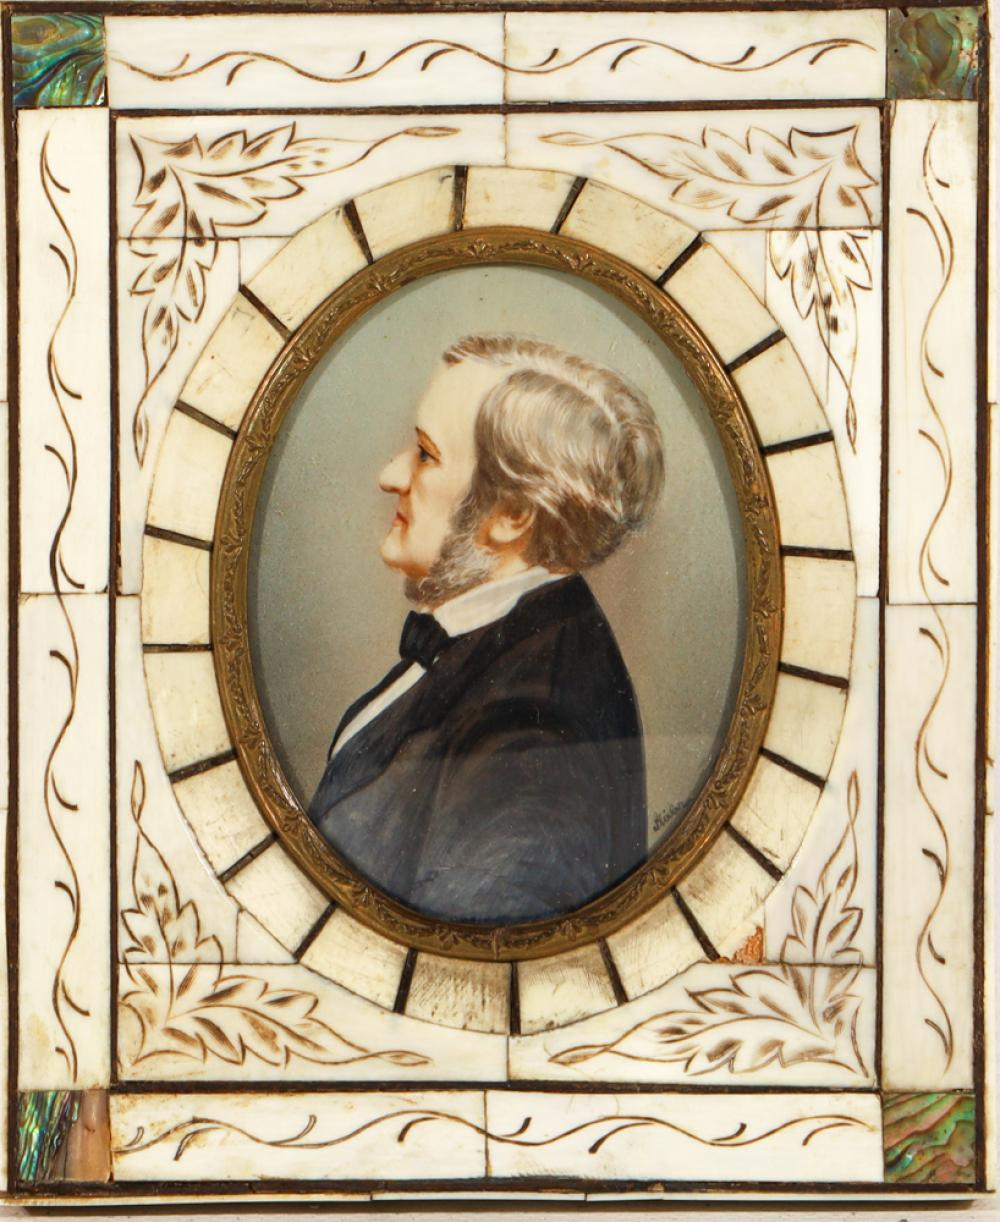 An Antique Miniature Portrait of Richard Wagner in an Engraved Ivory and Paua Shell Frame, Signed 'J. Stieler' (15cm x 12.5cm)